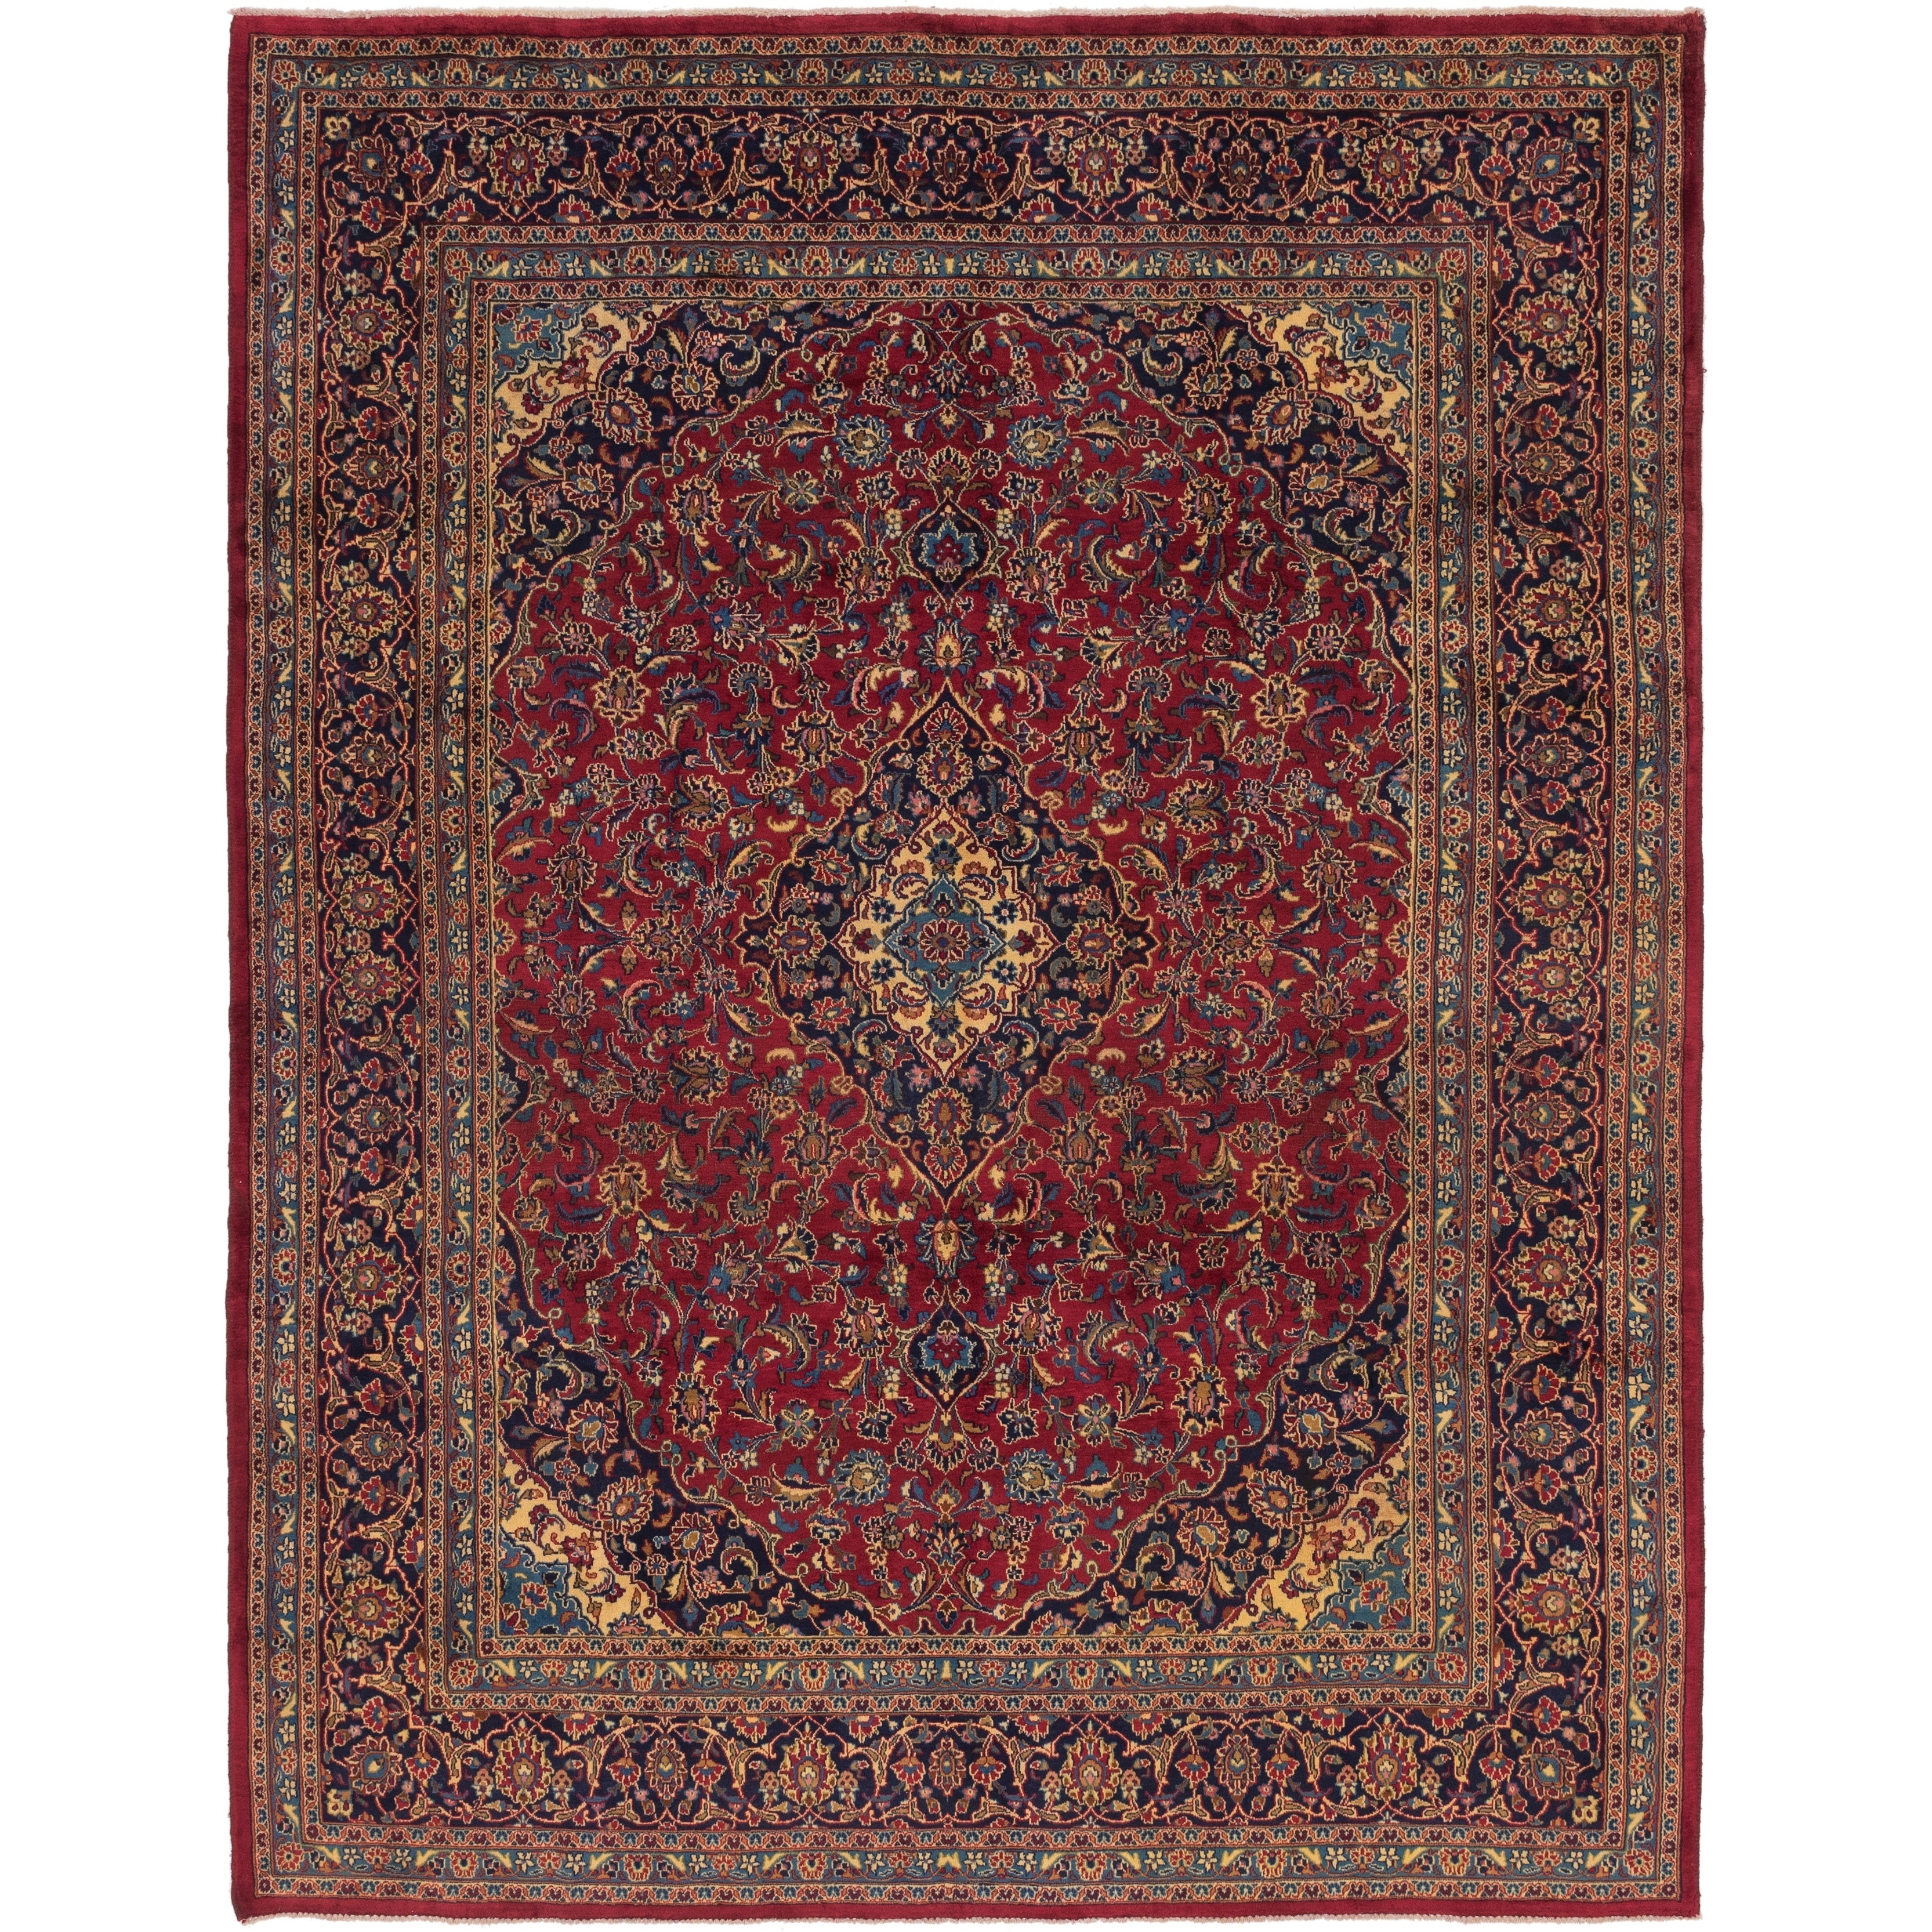 Hand Knotted Kashan Wool Area Rug - 9 8 x 12 7 (Red - 9 8 x 12 7)